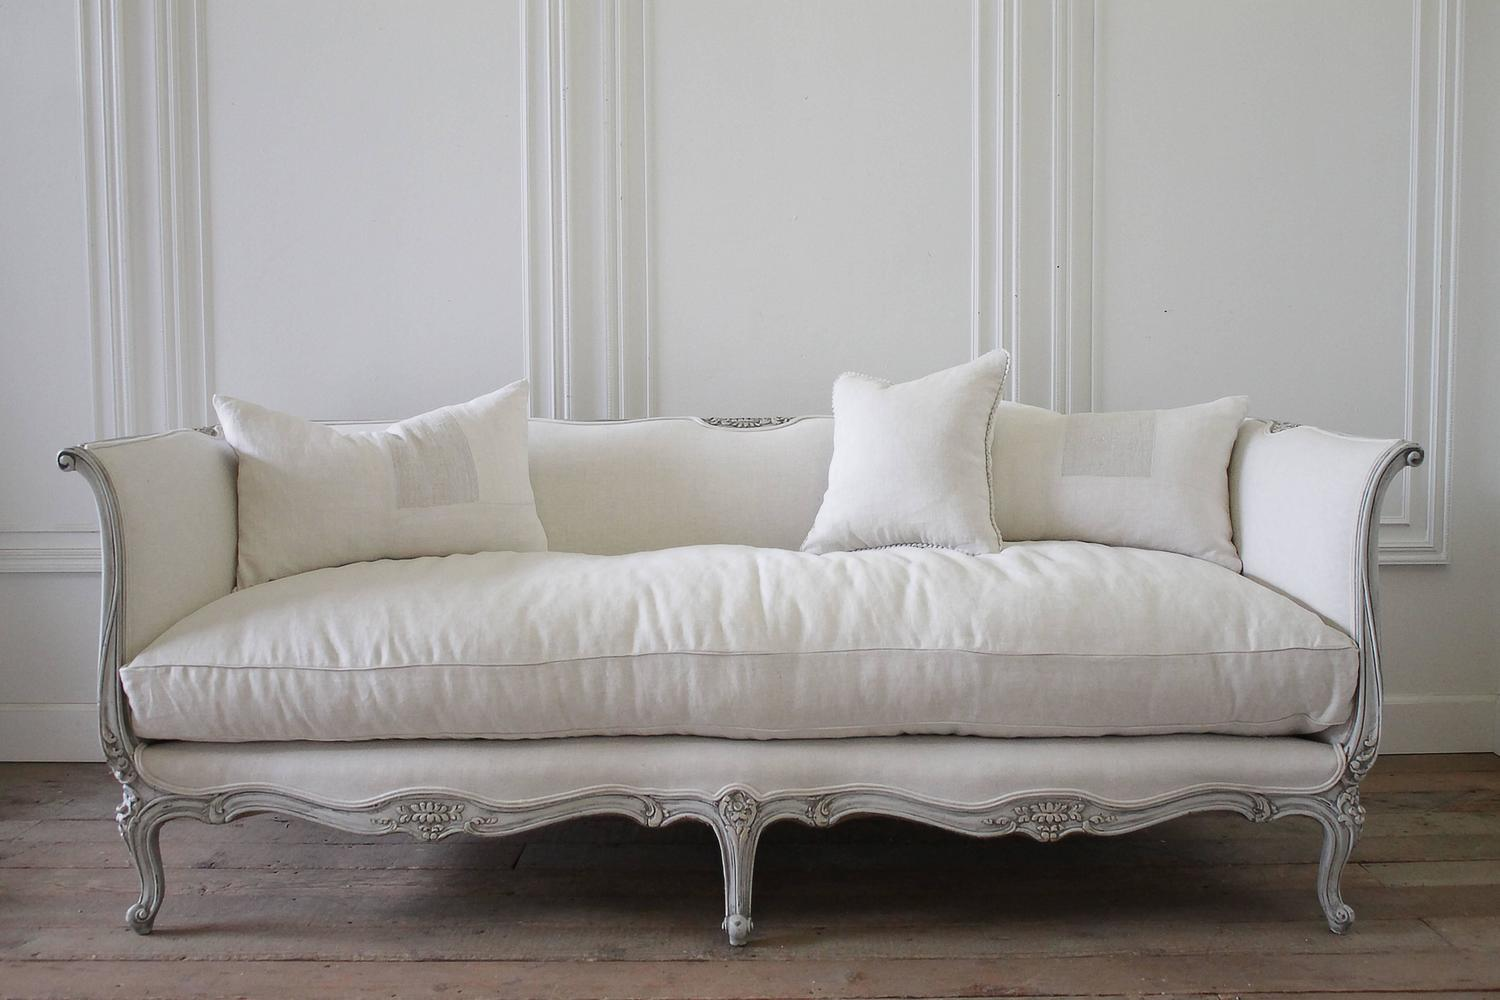 french style sofas for sale how to clean a sofa with dog 20th century louis xv daybed upholstered